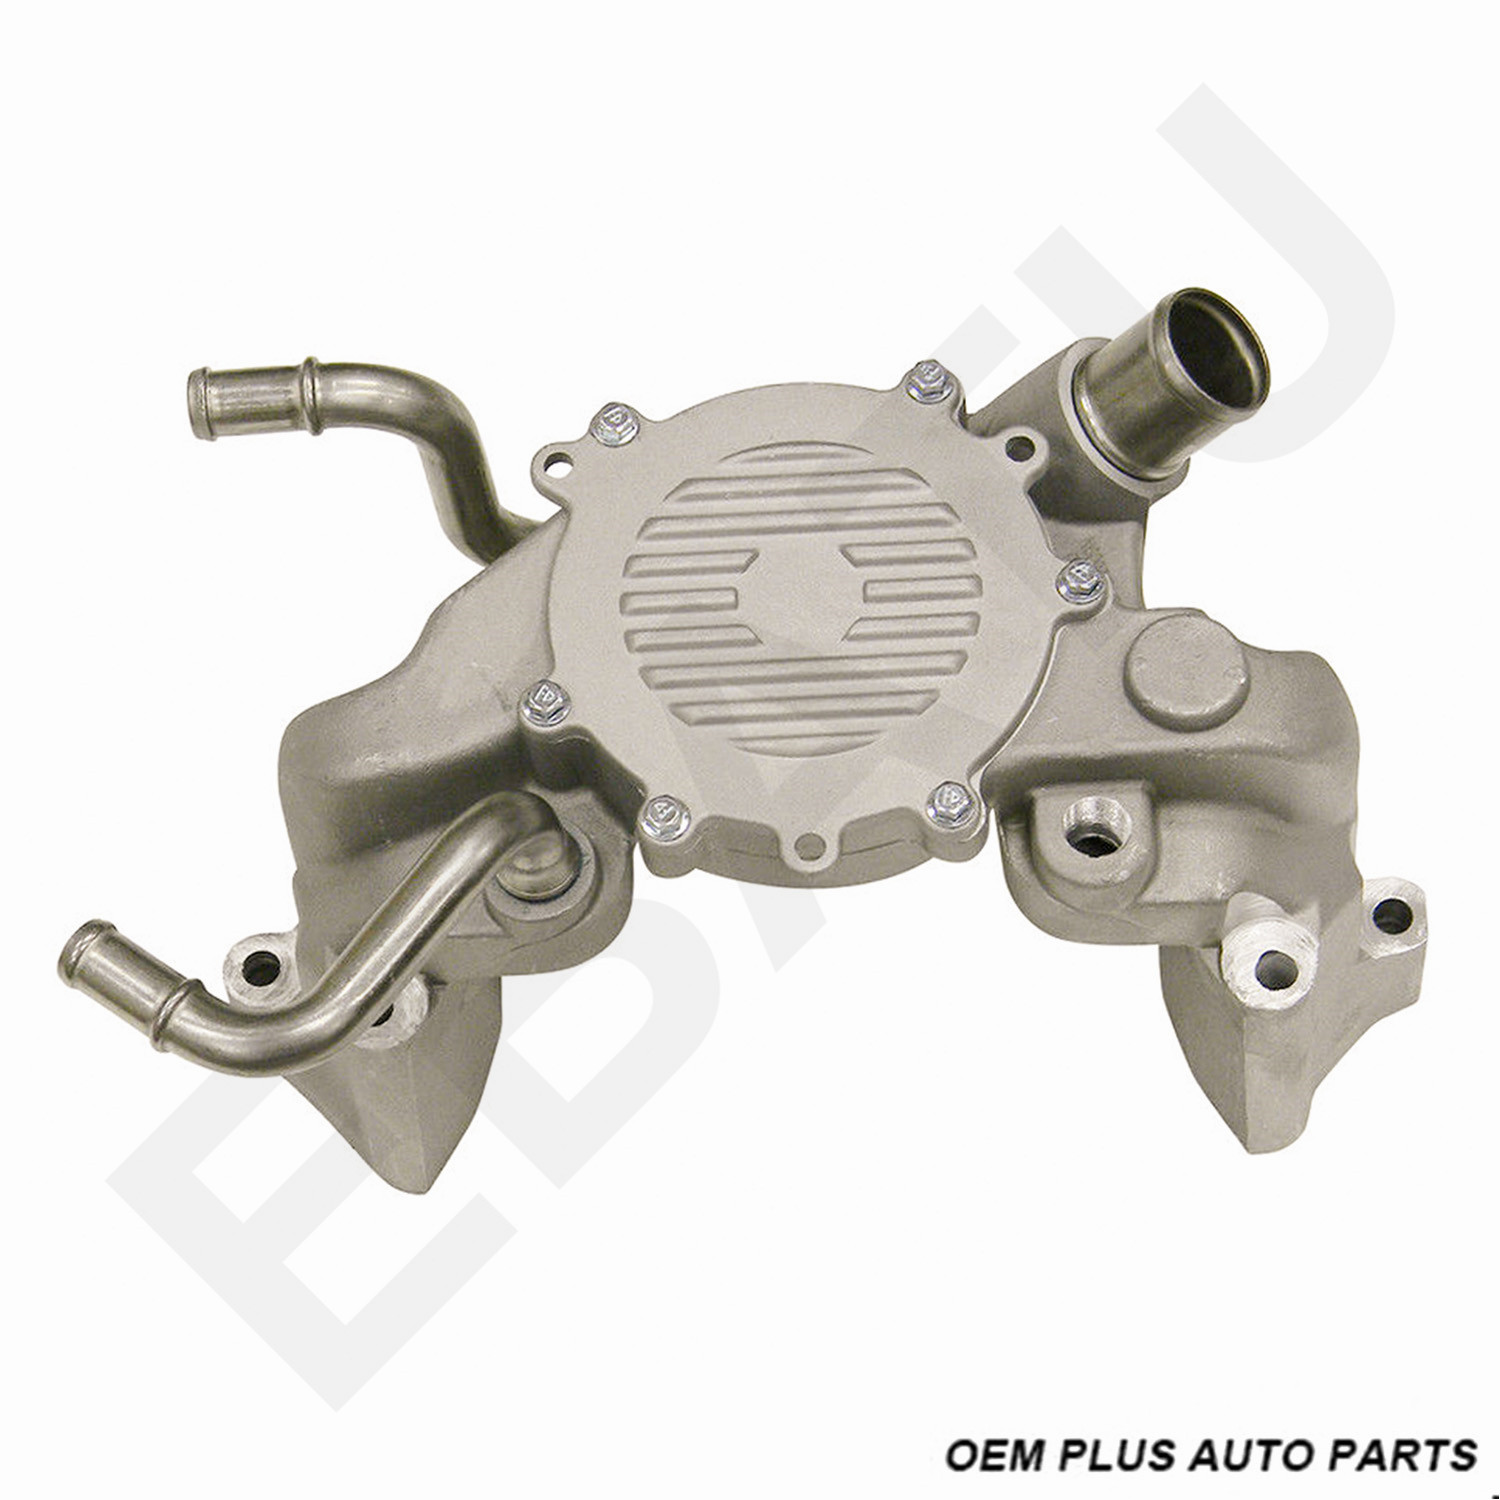 New water pump w gasket for buick cadillac chevy v8 5 7l 4 3l 130 7110